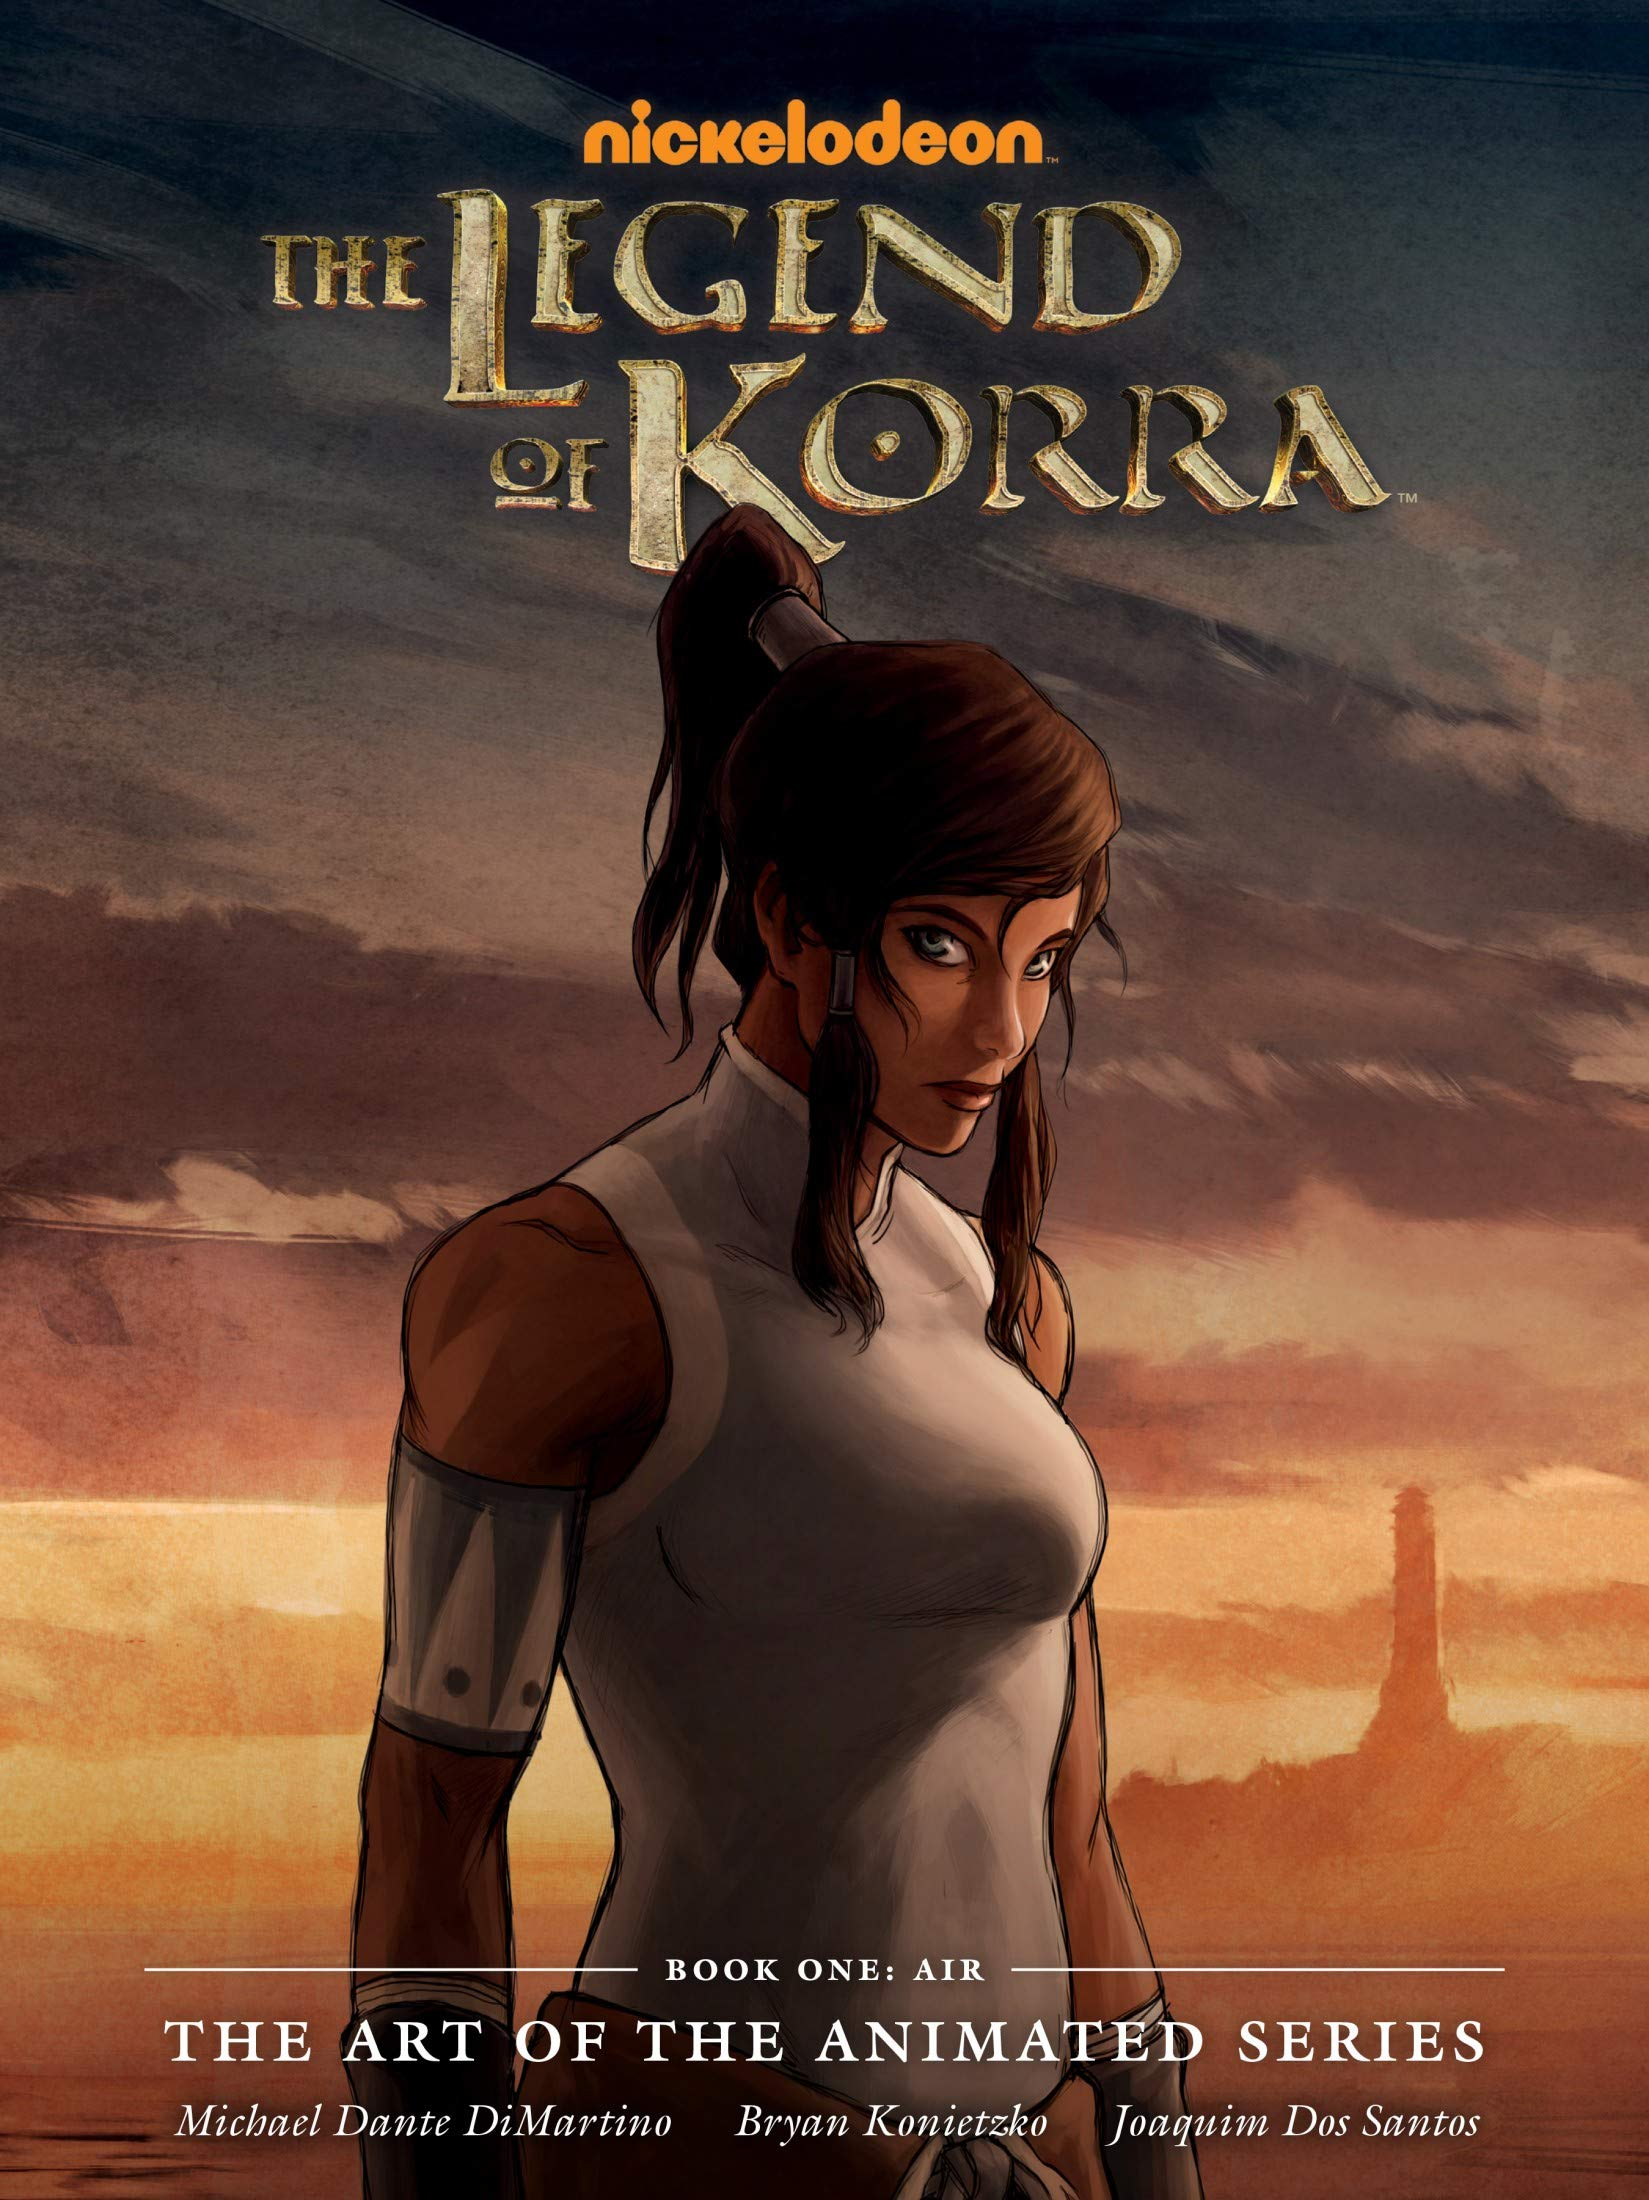 TheLegend: Korra - Vol 1 Great Adventure Comic Avatar The Legend Graphic Novels Of Korra For Young & Teens , Adults